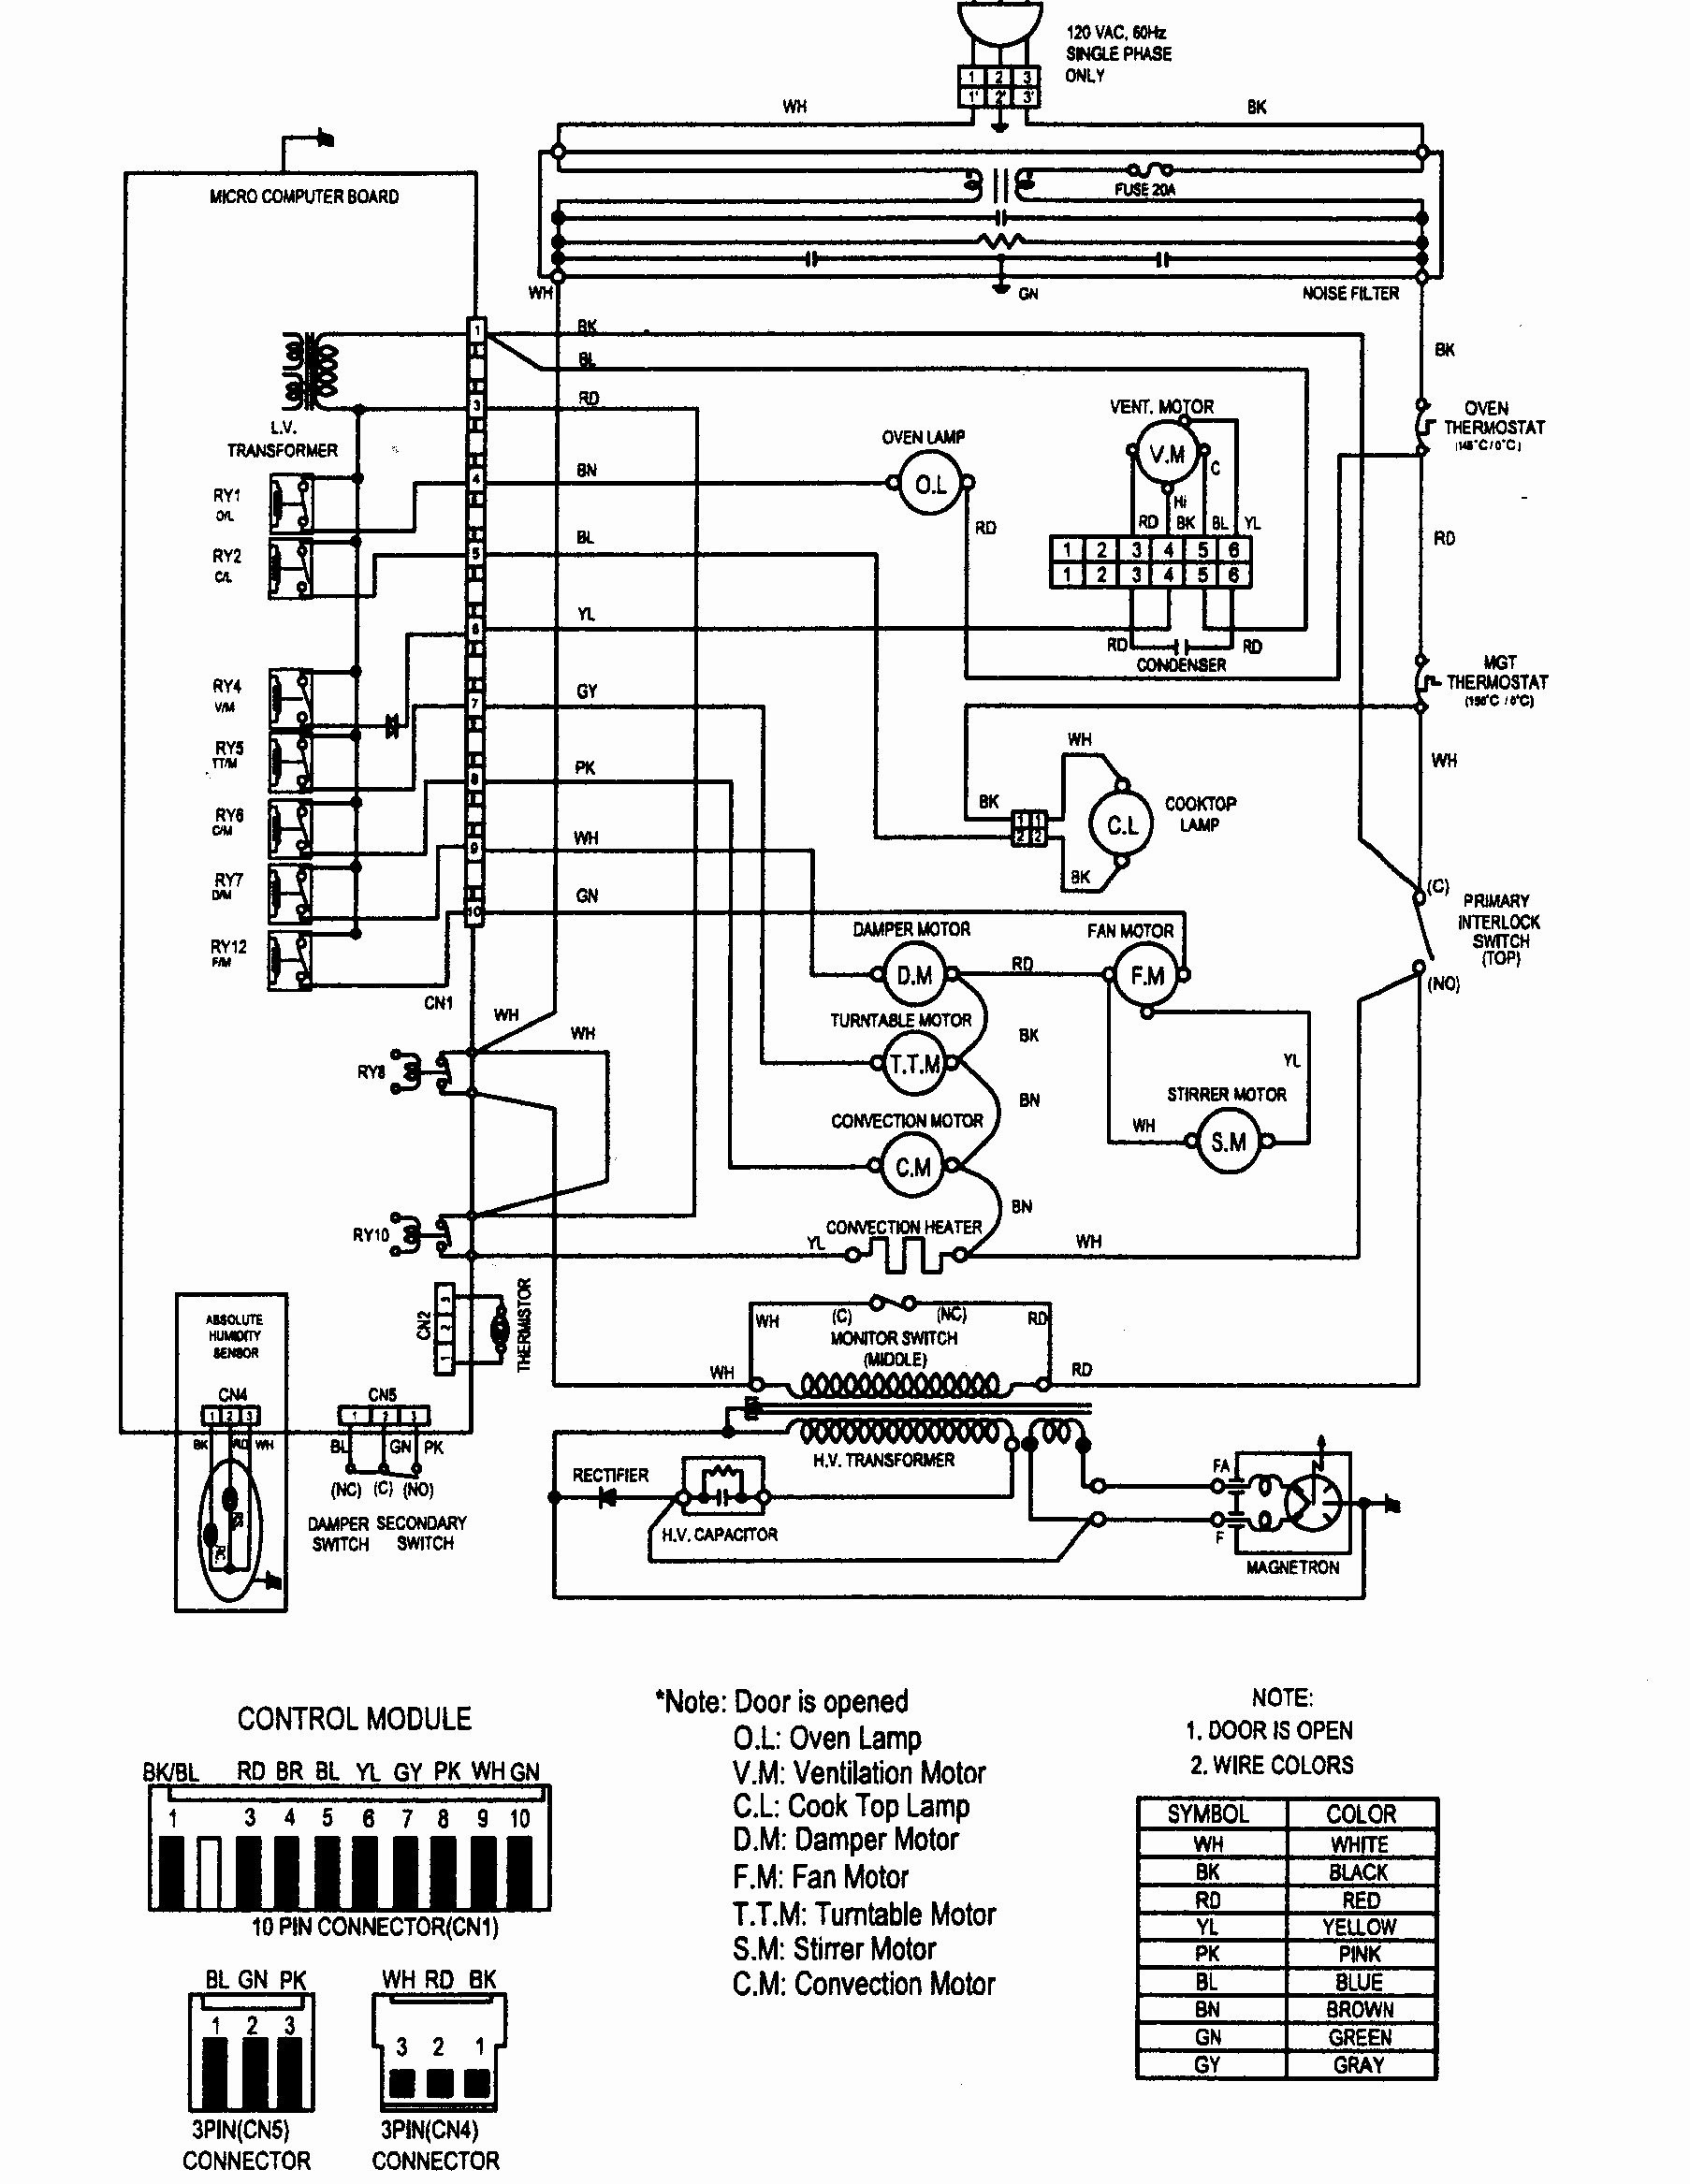 Thermostat Wiring Diagram Kenmore 36291112004 Great Installation Diagrams Rh 47 Shareplm De Model 91136665892 Wire